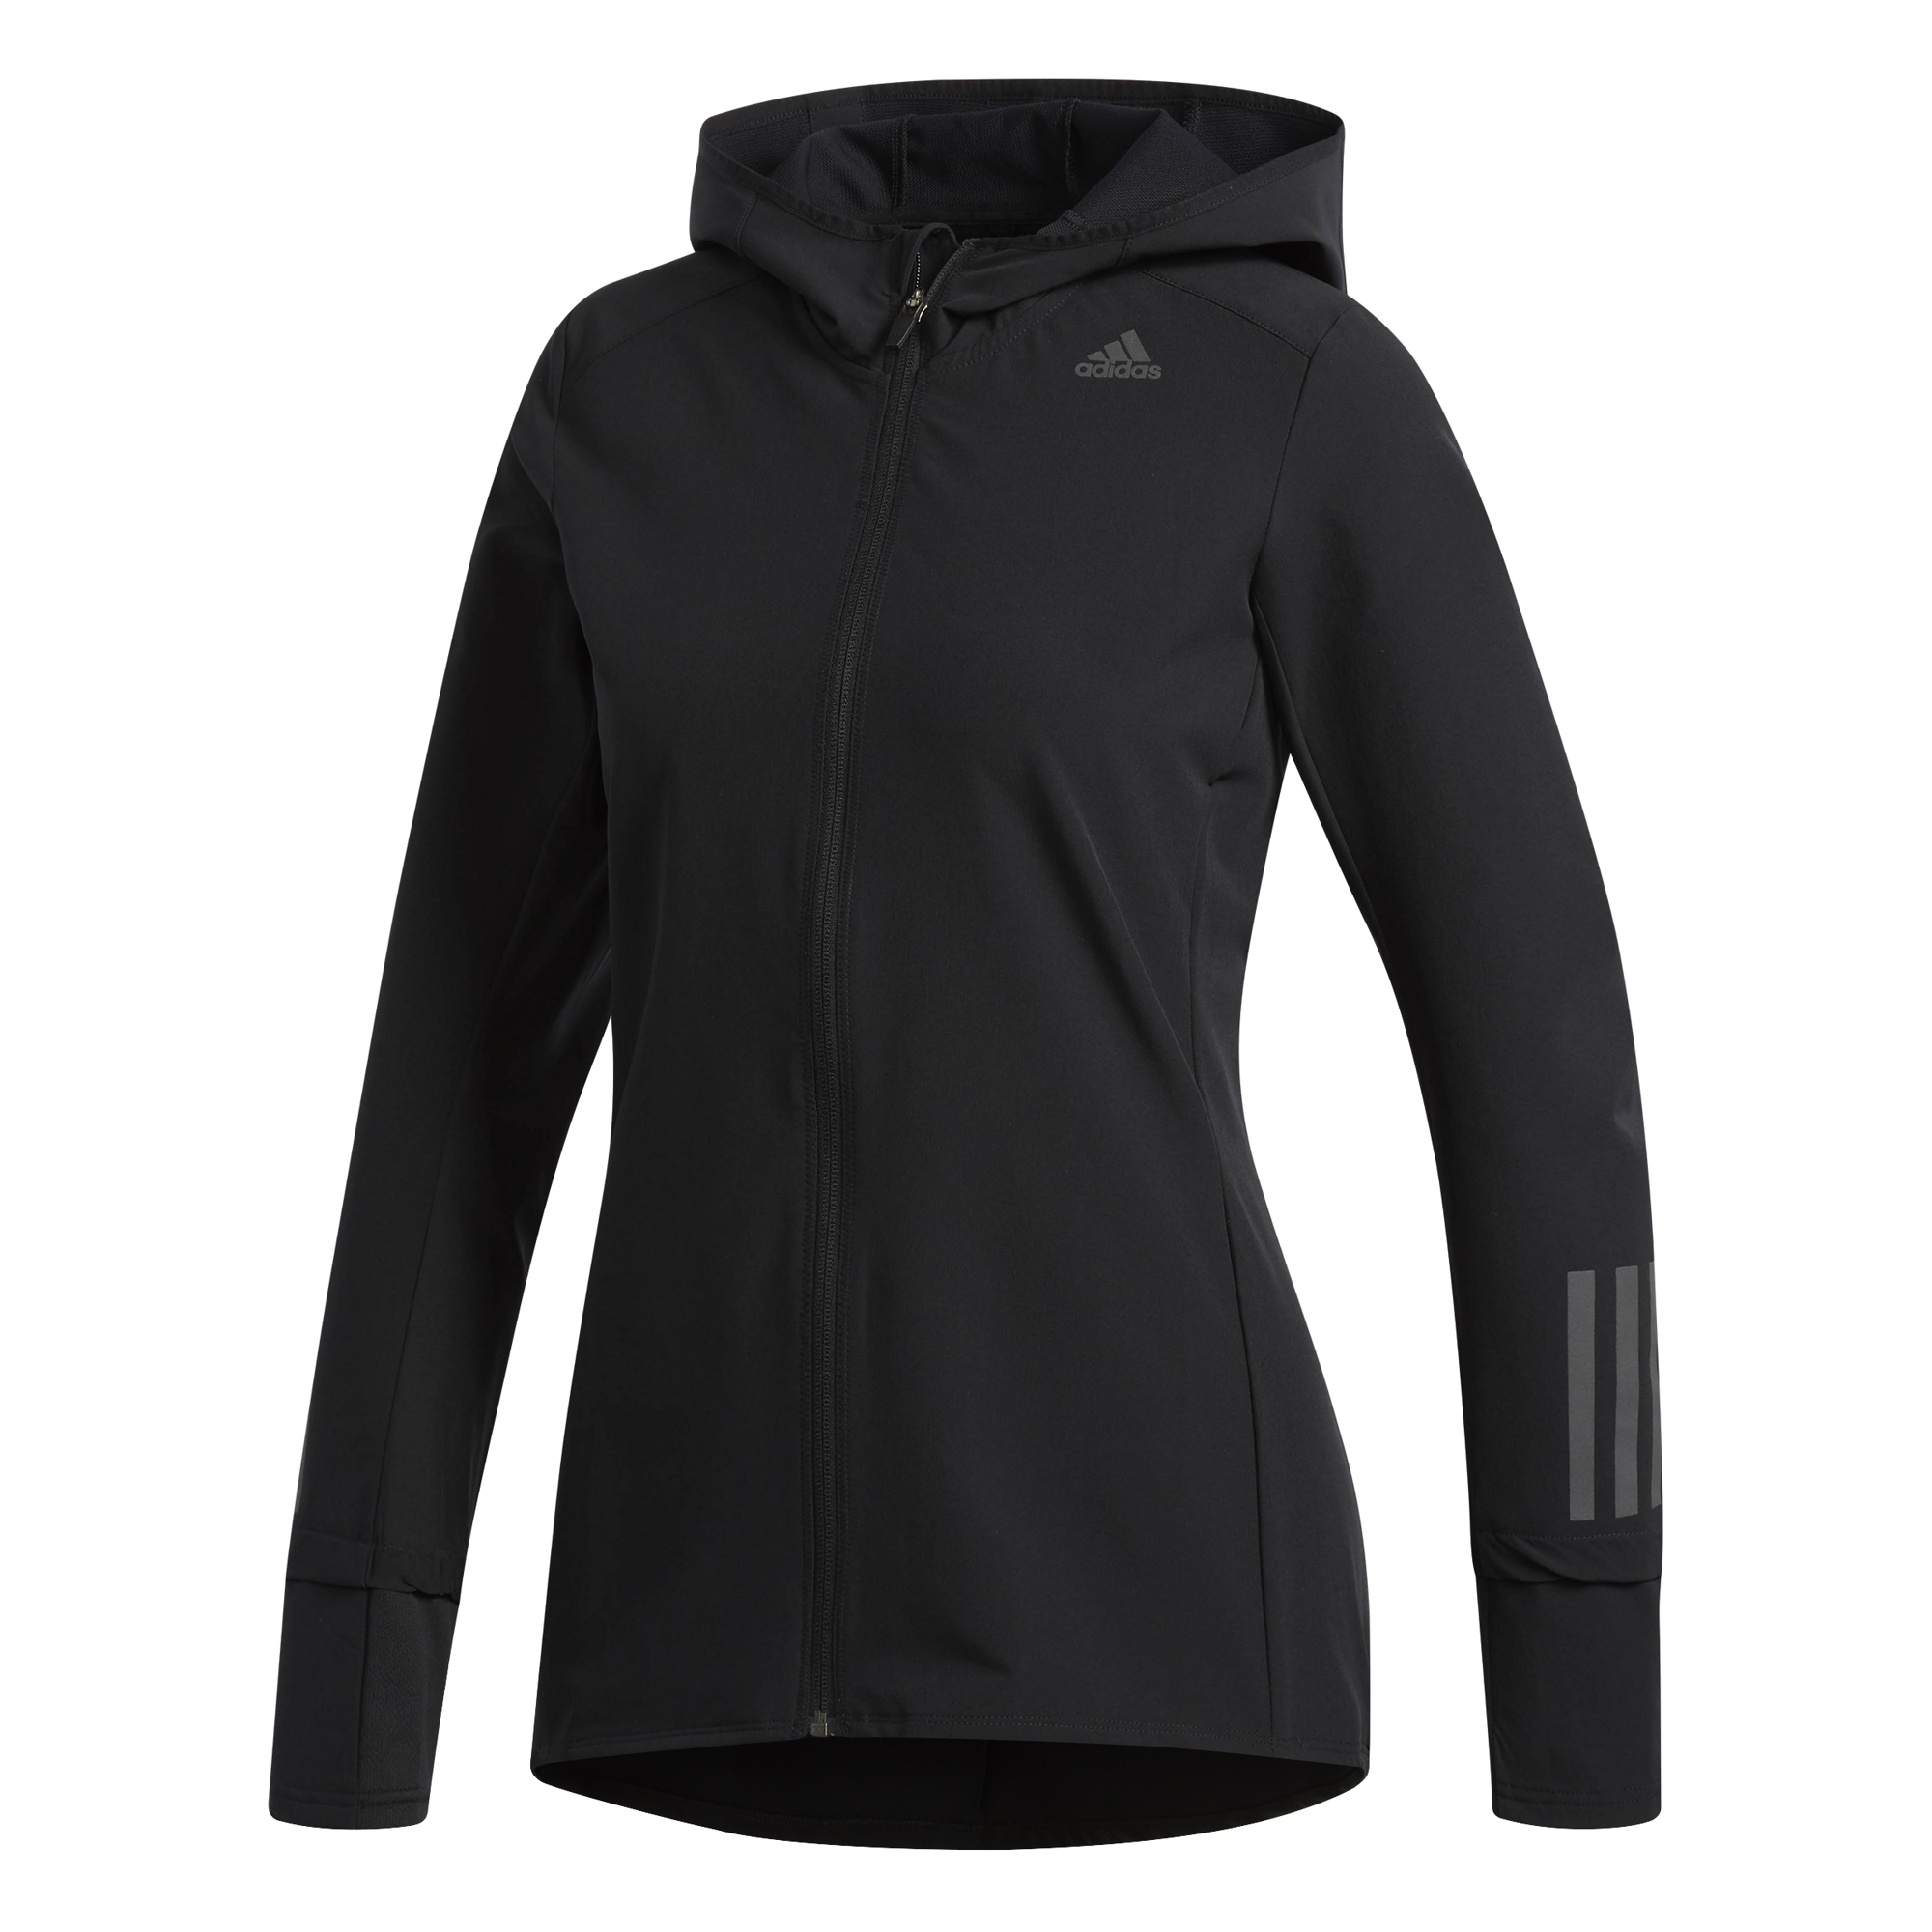 8d512044617ac adidas Women's Response Soft Shell Jacket | Jackets